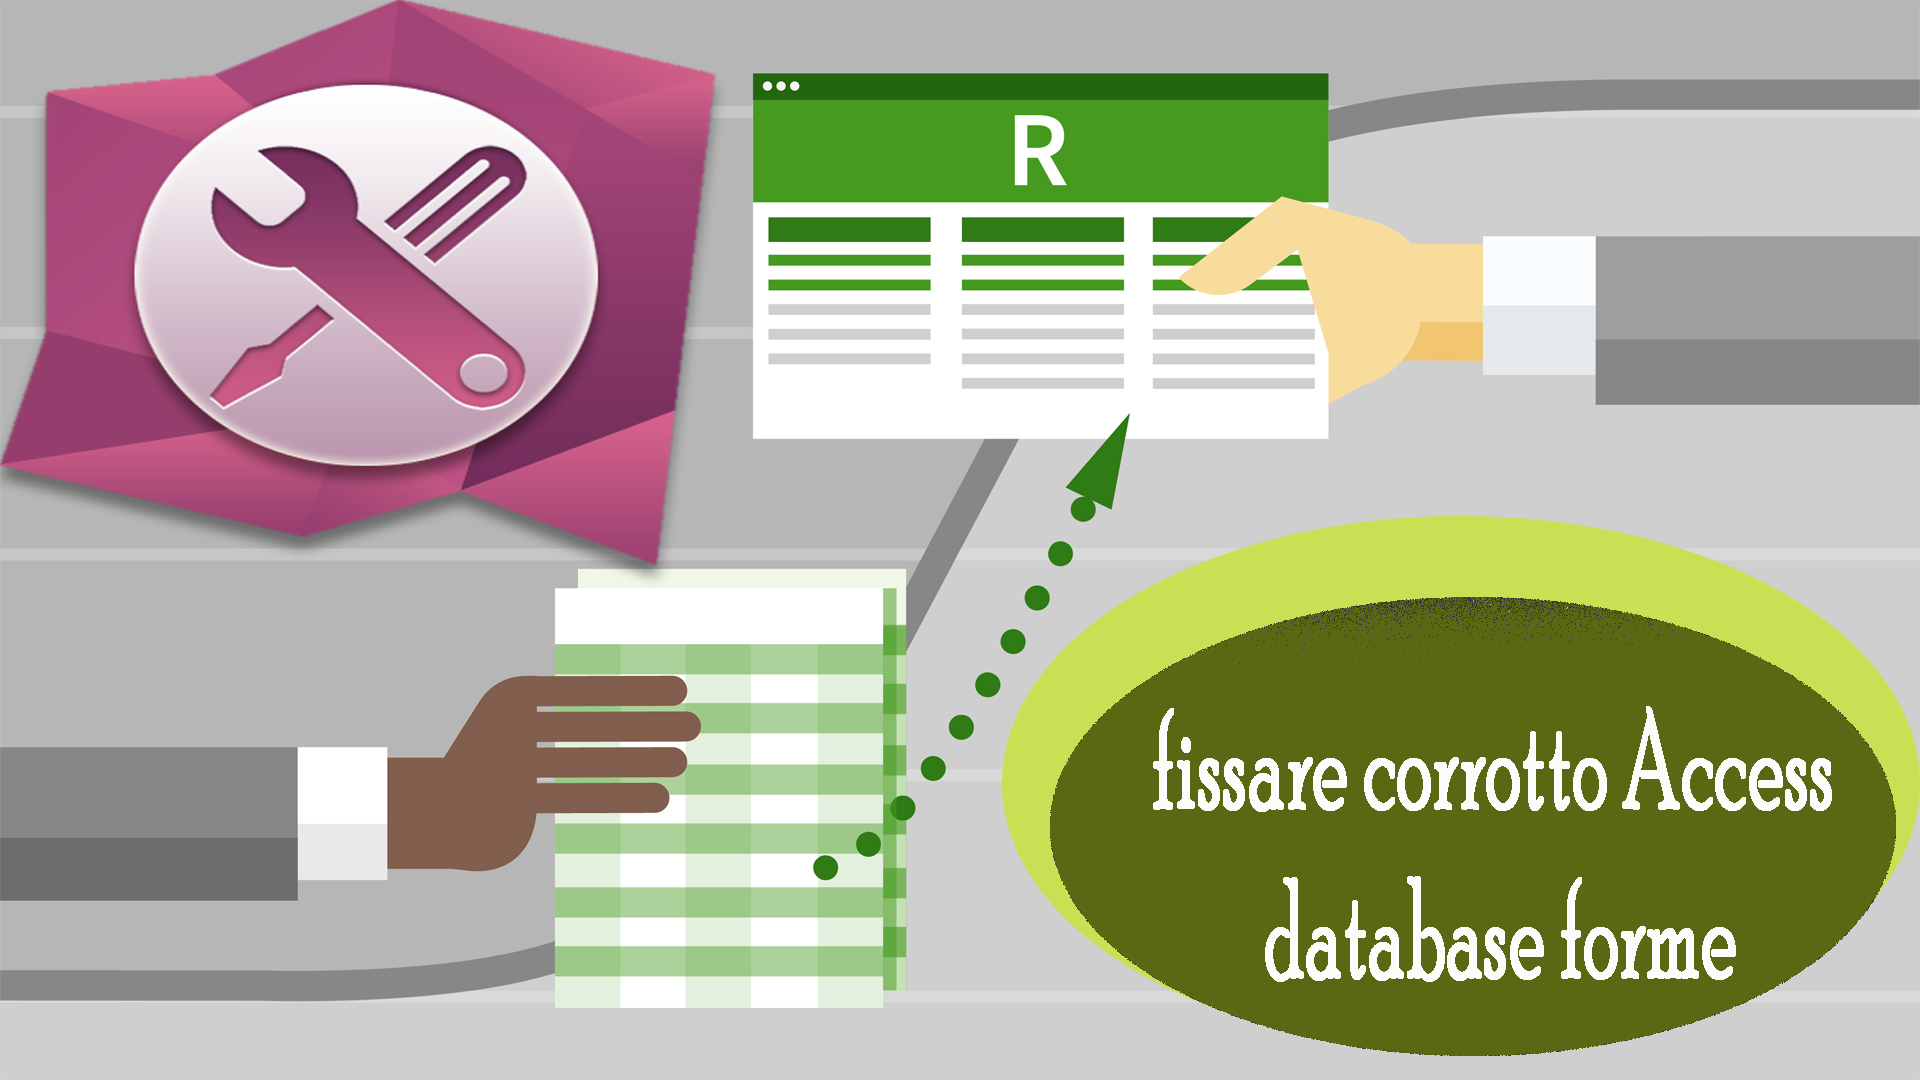 fissare-corrotto-access-database-forme